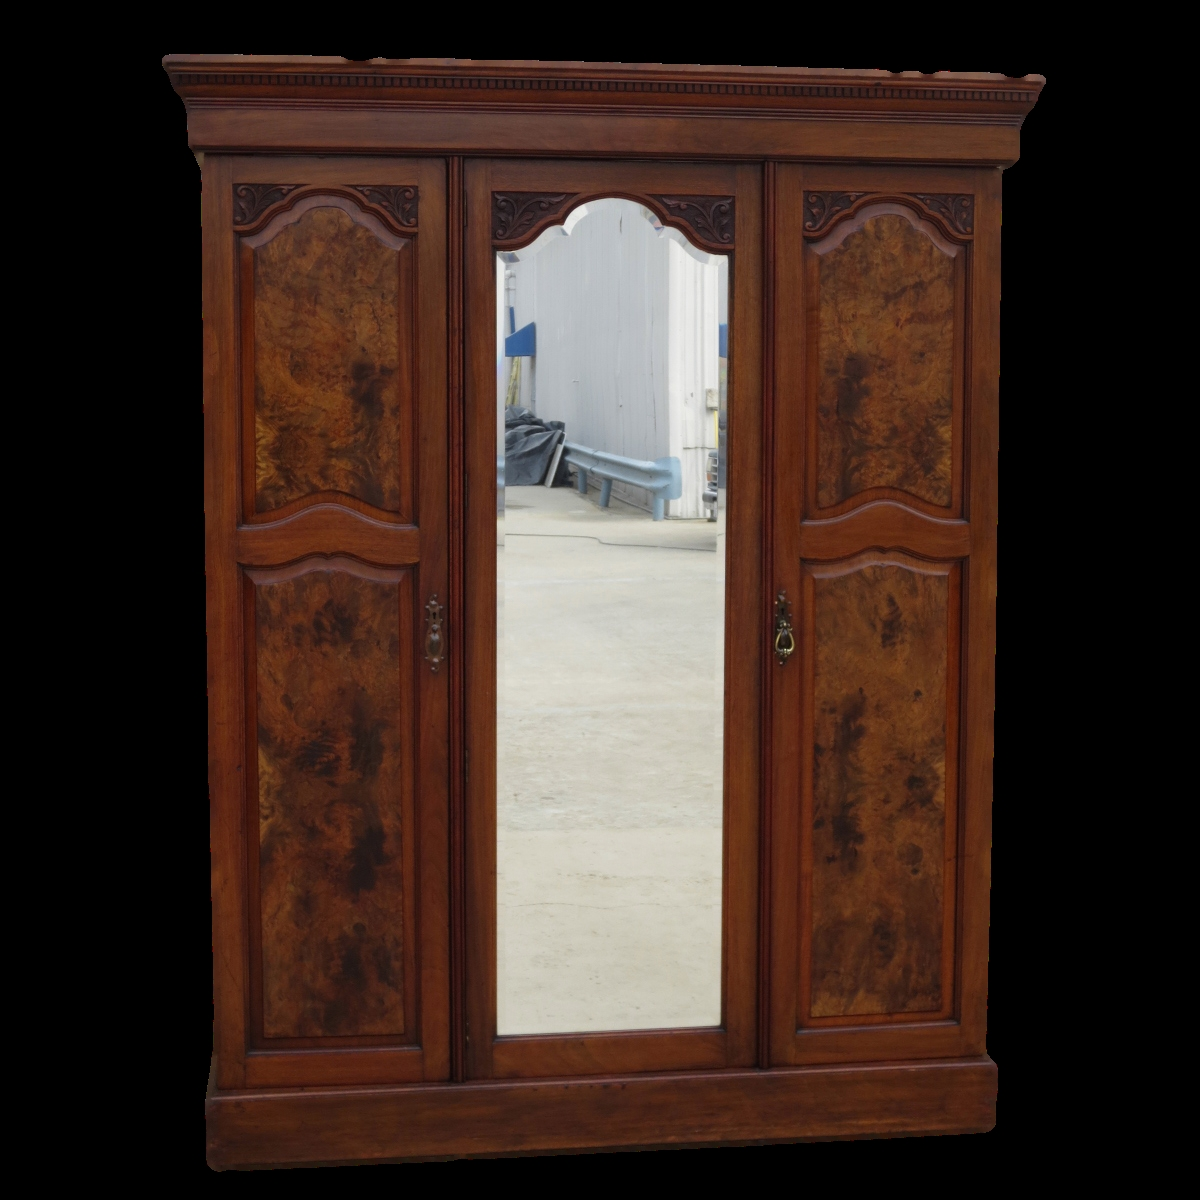 Antique Armoires Antique Wardrobes And Antique Furniture From Pertaining To Large Wooden Wardrobes (Image 3 of 25)